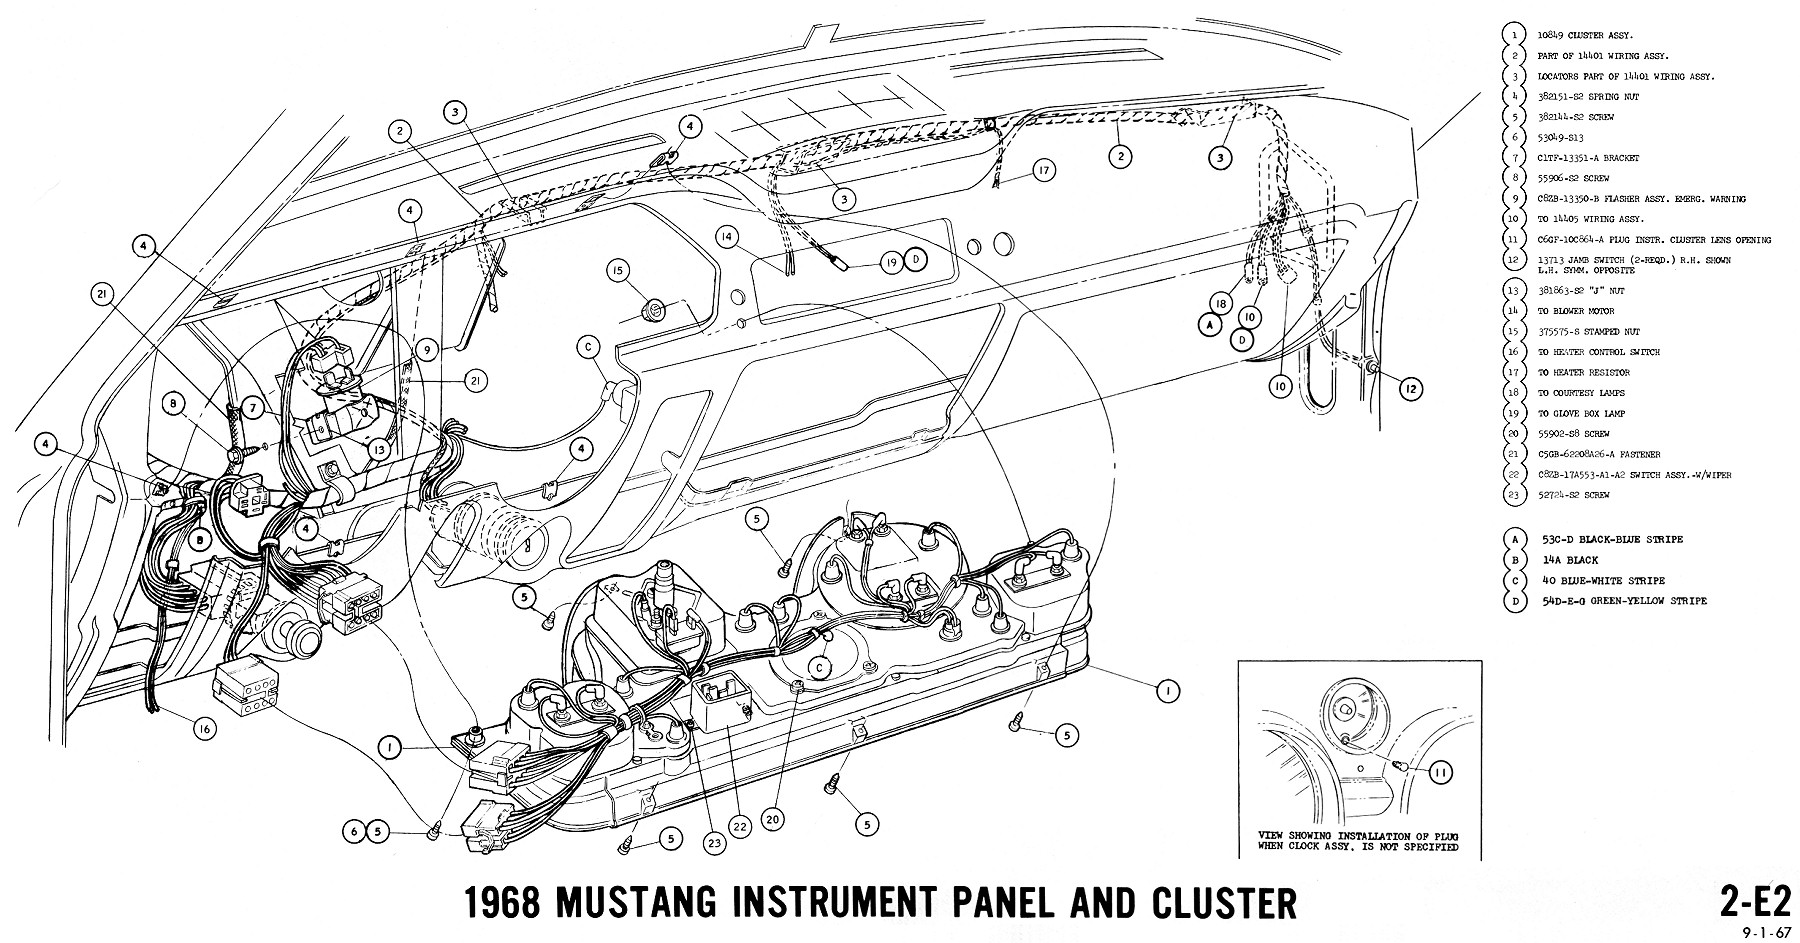 1968 mustang wiring diagram instruments 2 2015 mustang wiring diagram schematic mustang 2015 \u2022 free wiring 1989 mustang wiring diagram at bayanpartner.co